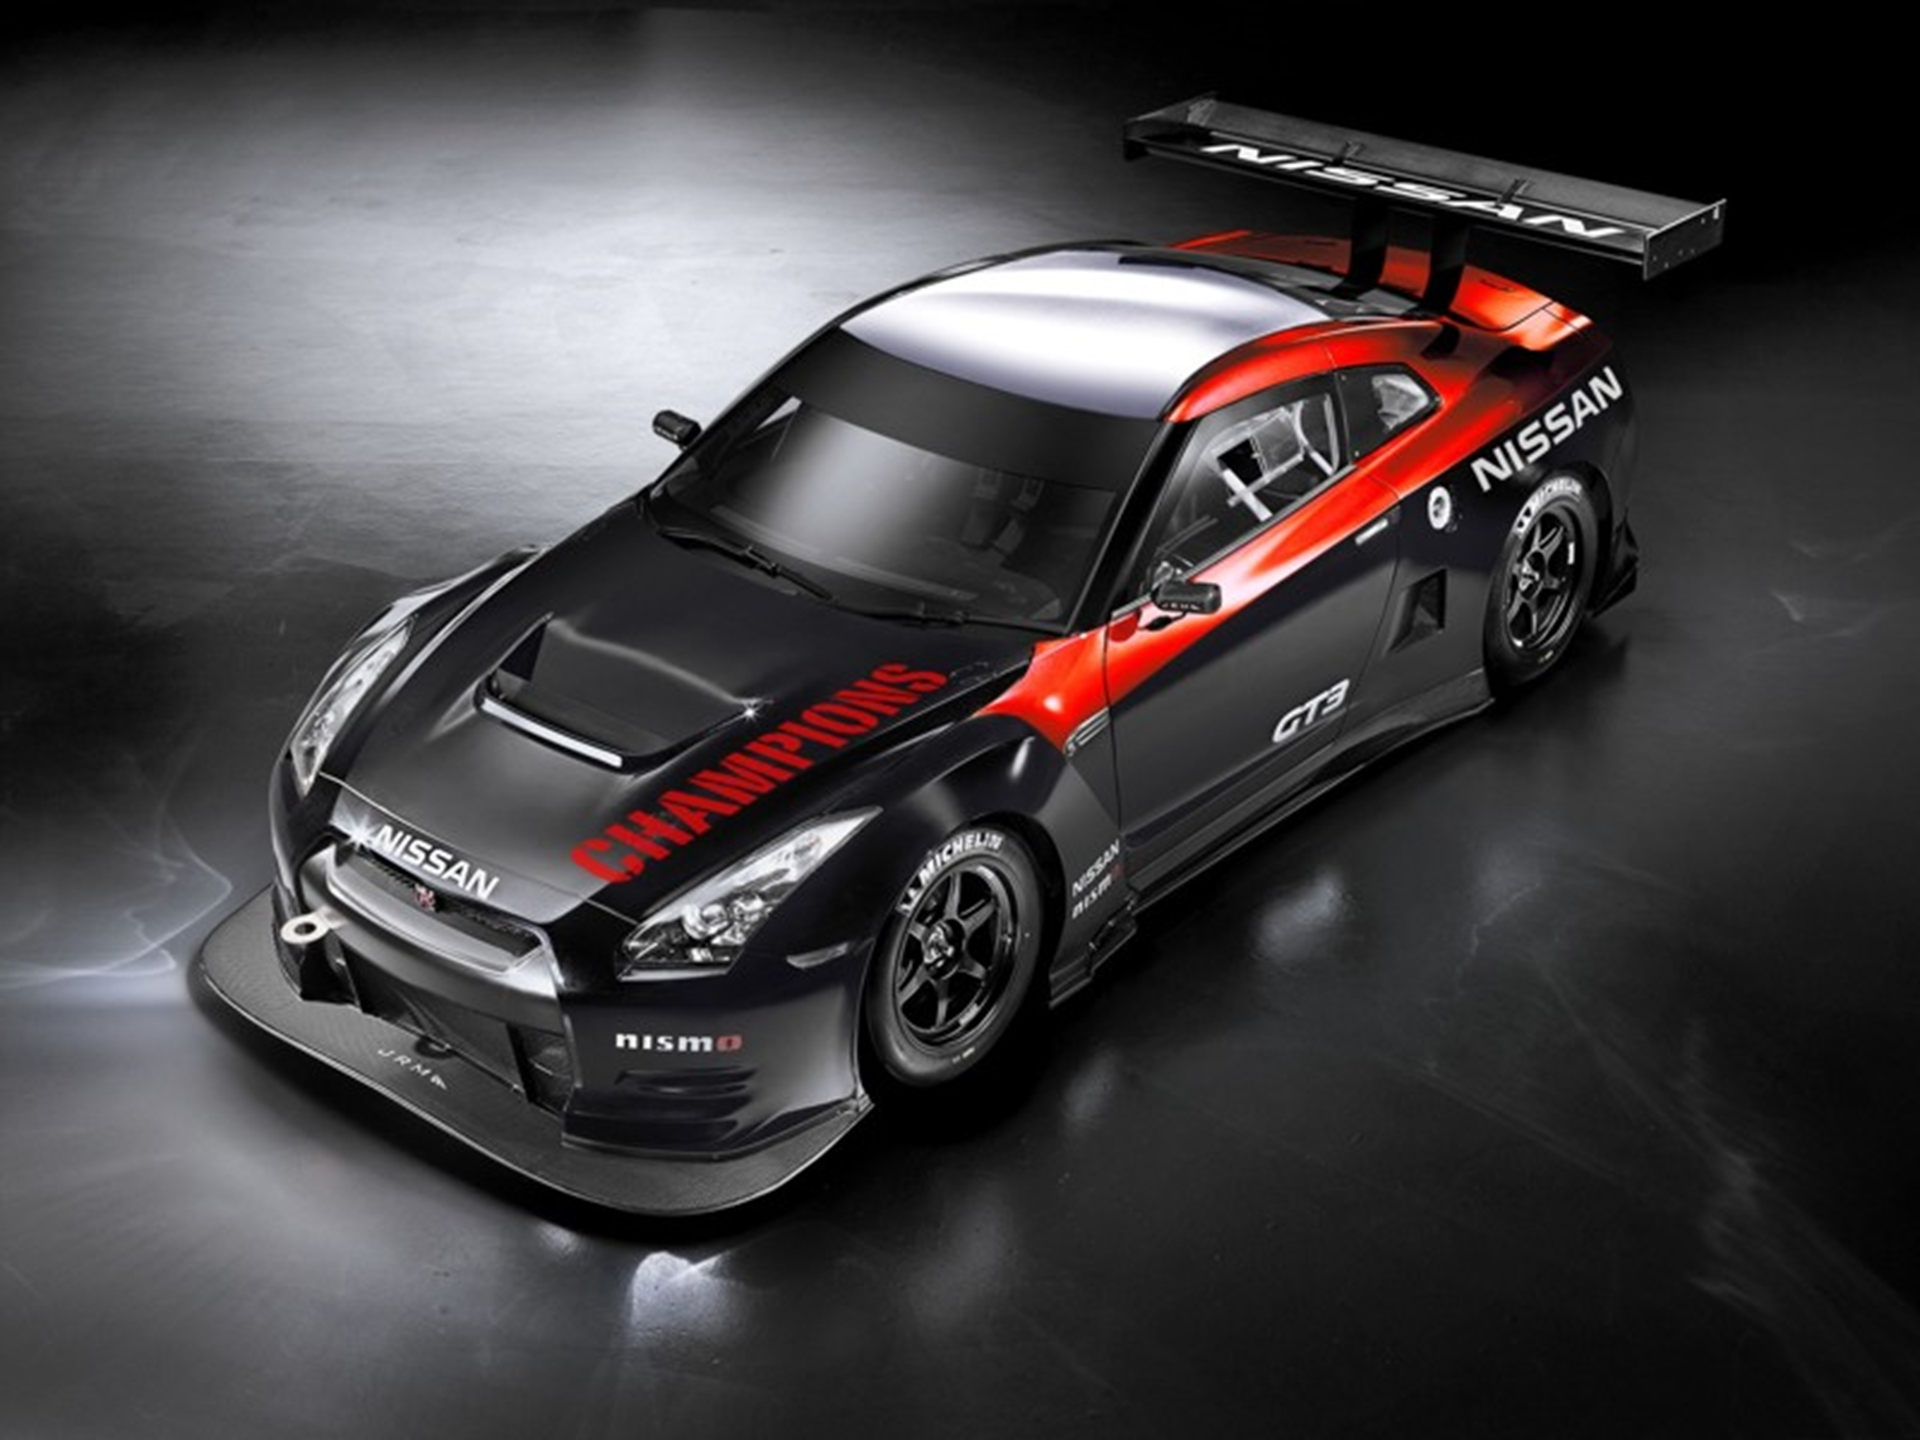 The Nissan GT-R Nismo GT3